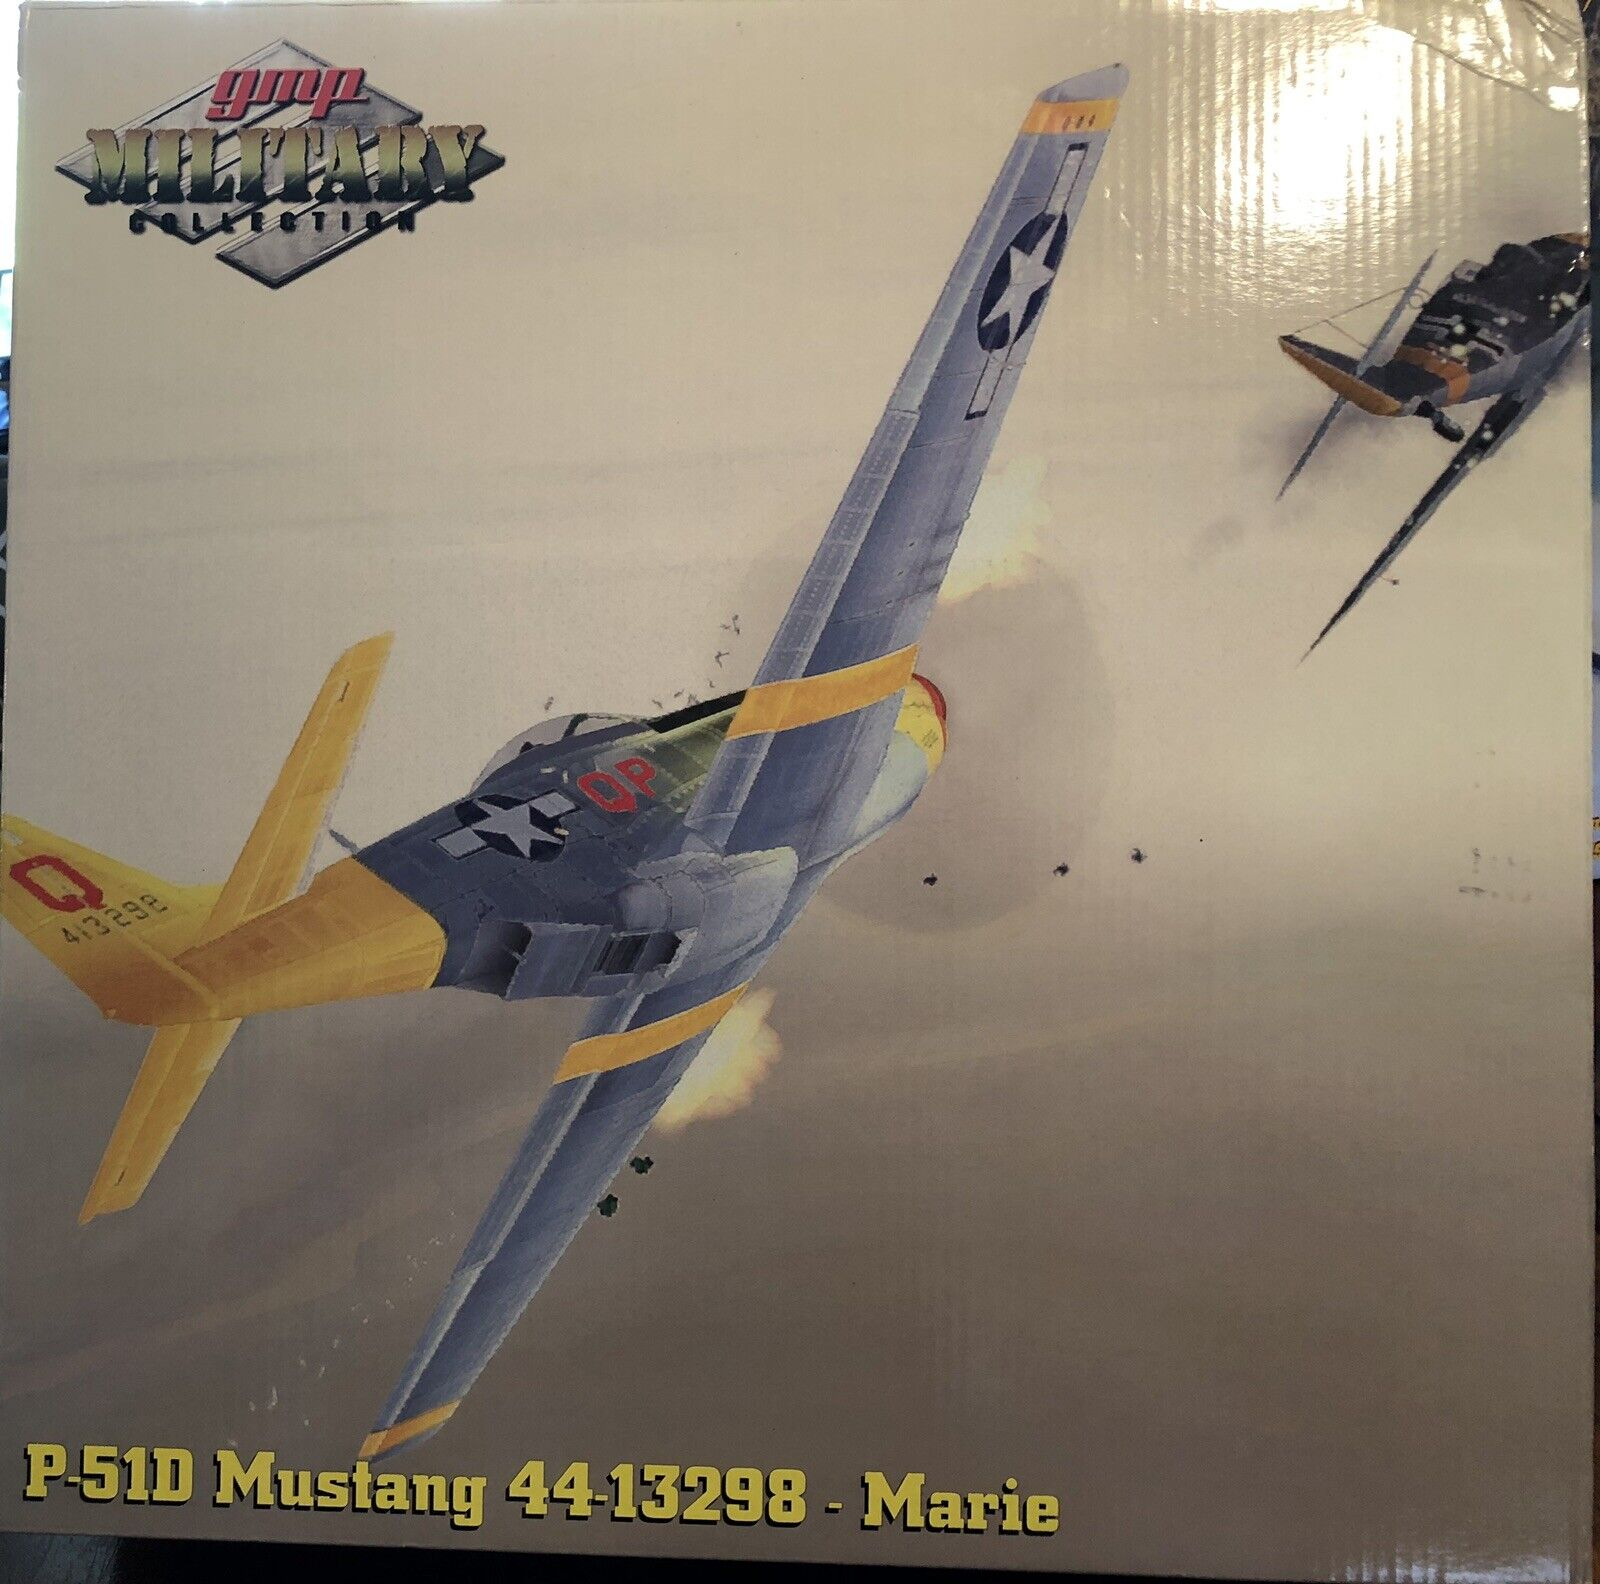 GMP Military Collection, 1 35 Scale P-51D Mustang 44-13298-Marie